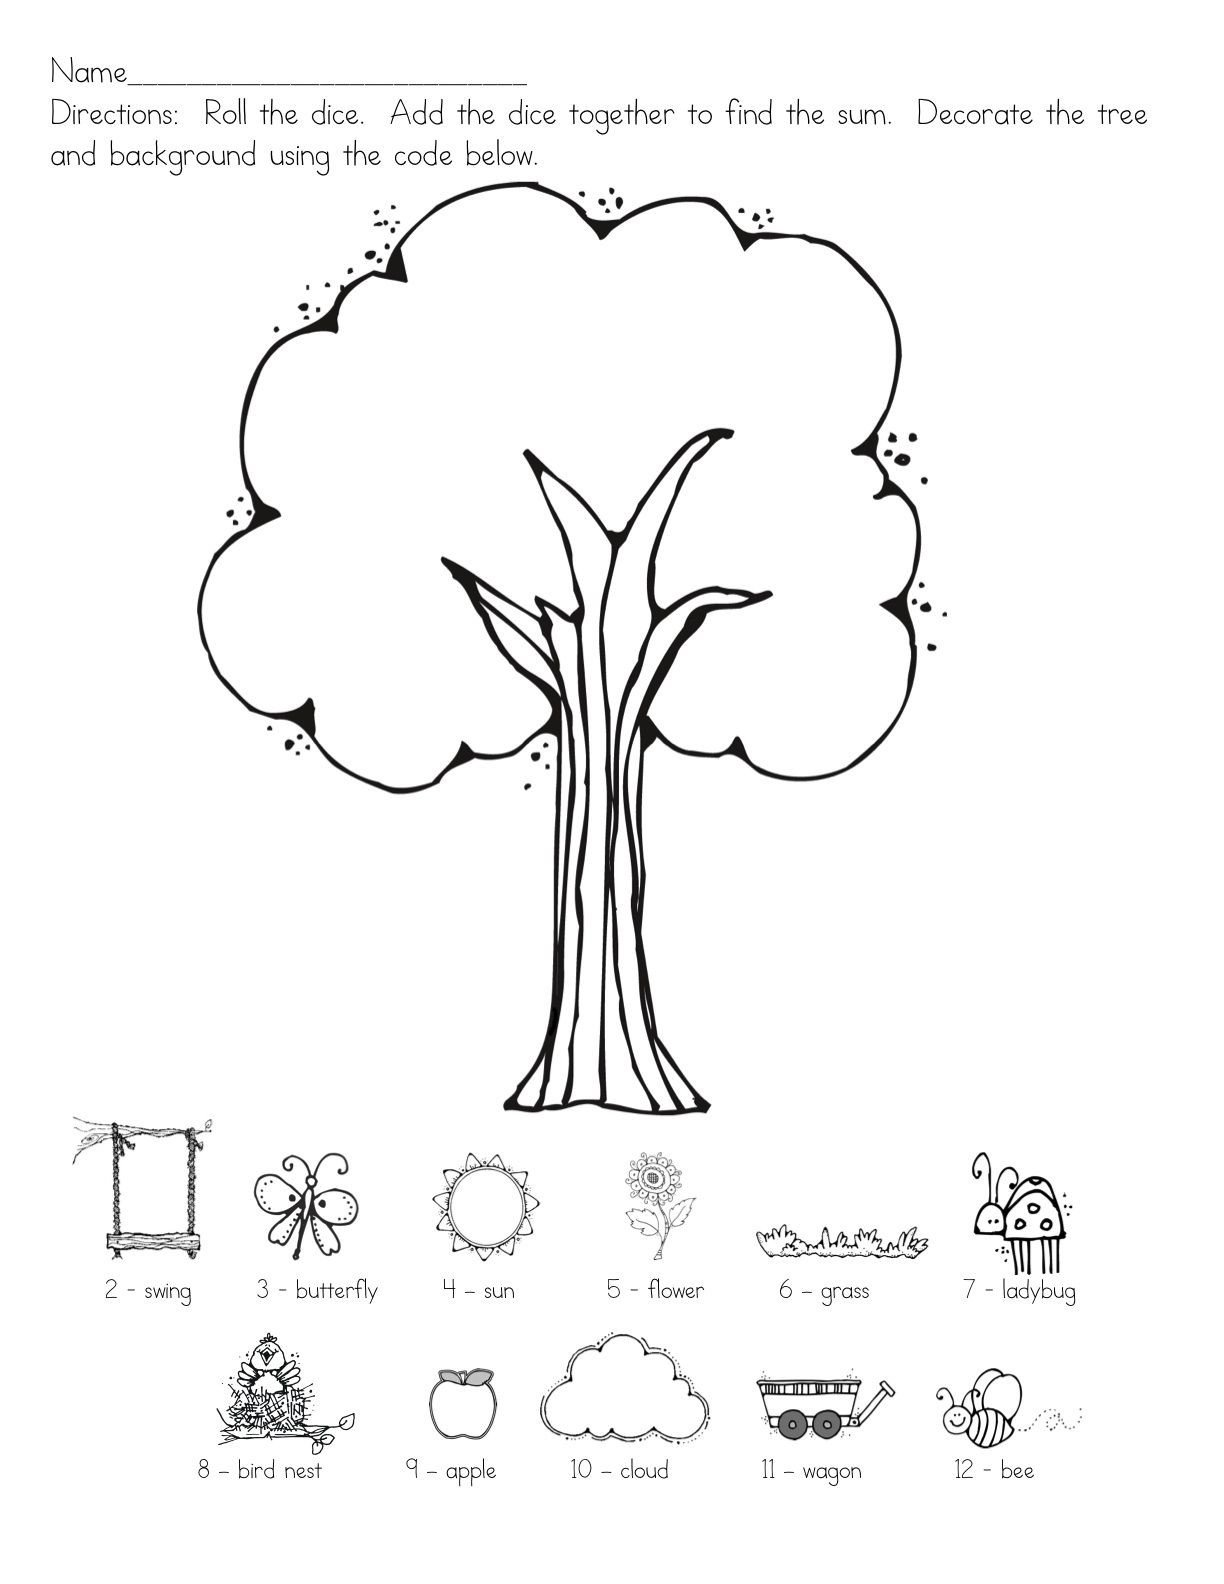 Following Directions Coloring Worksheet Summer Roll the Dice 1224—1584